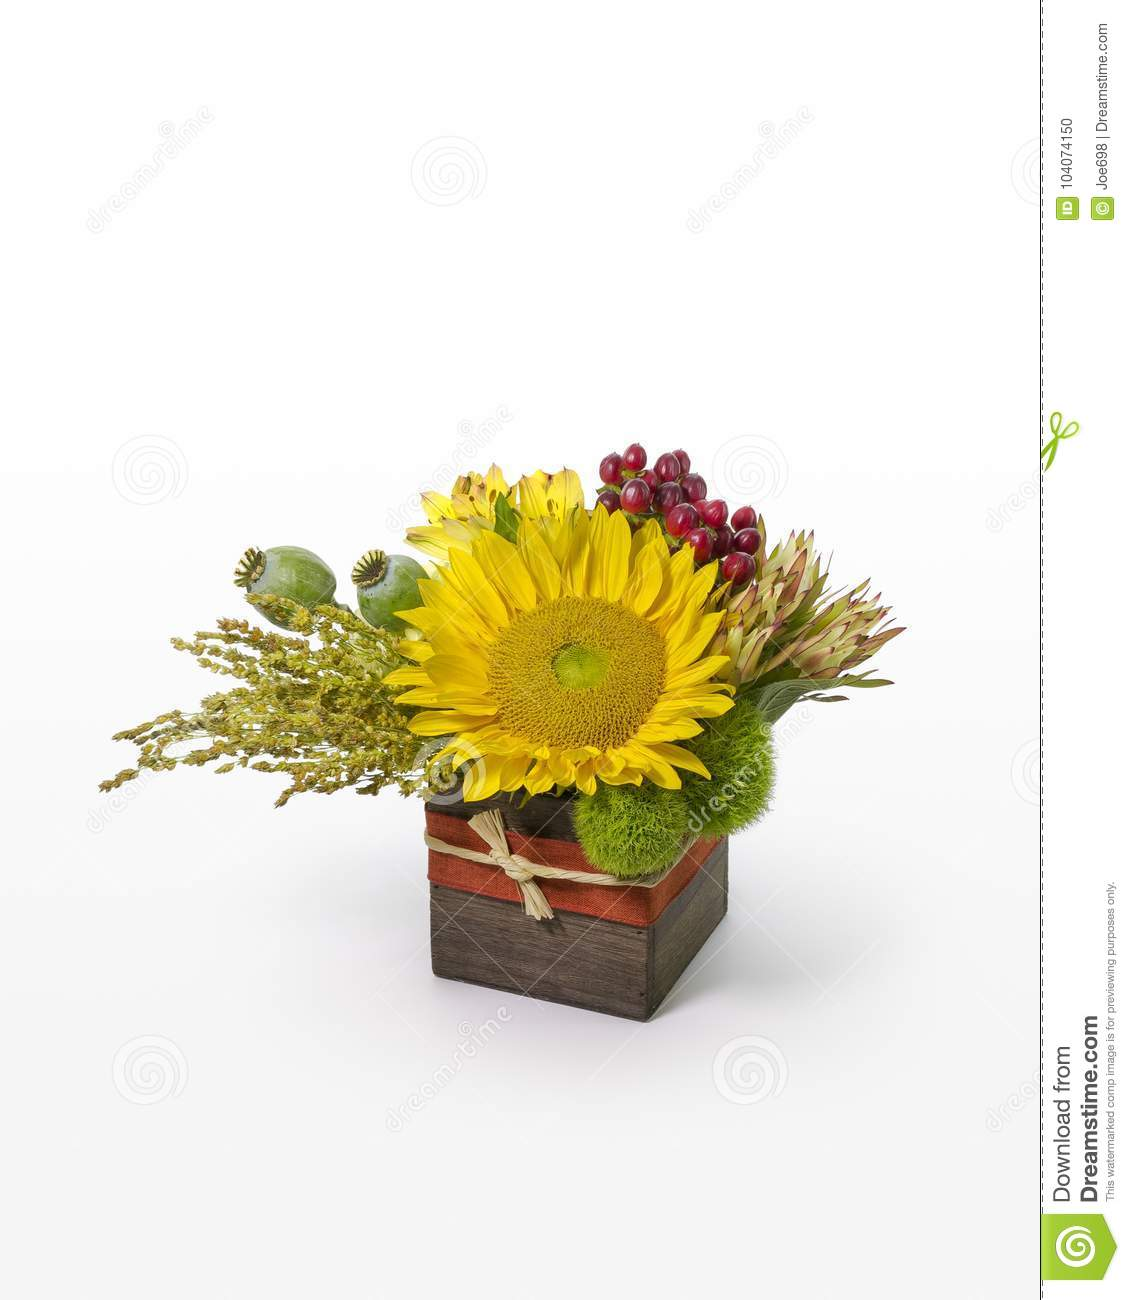 Sunflower And Mixed Flower Arrangement Modern Floral Design In A Rustic Box For Florist Stock Photo Image Of Created Mixed 104074150